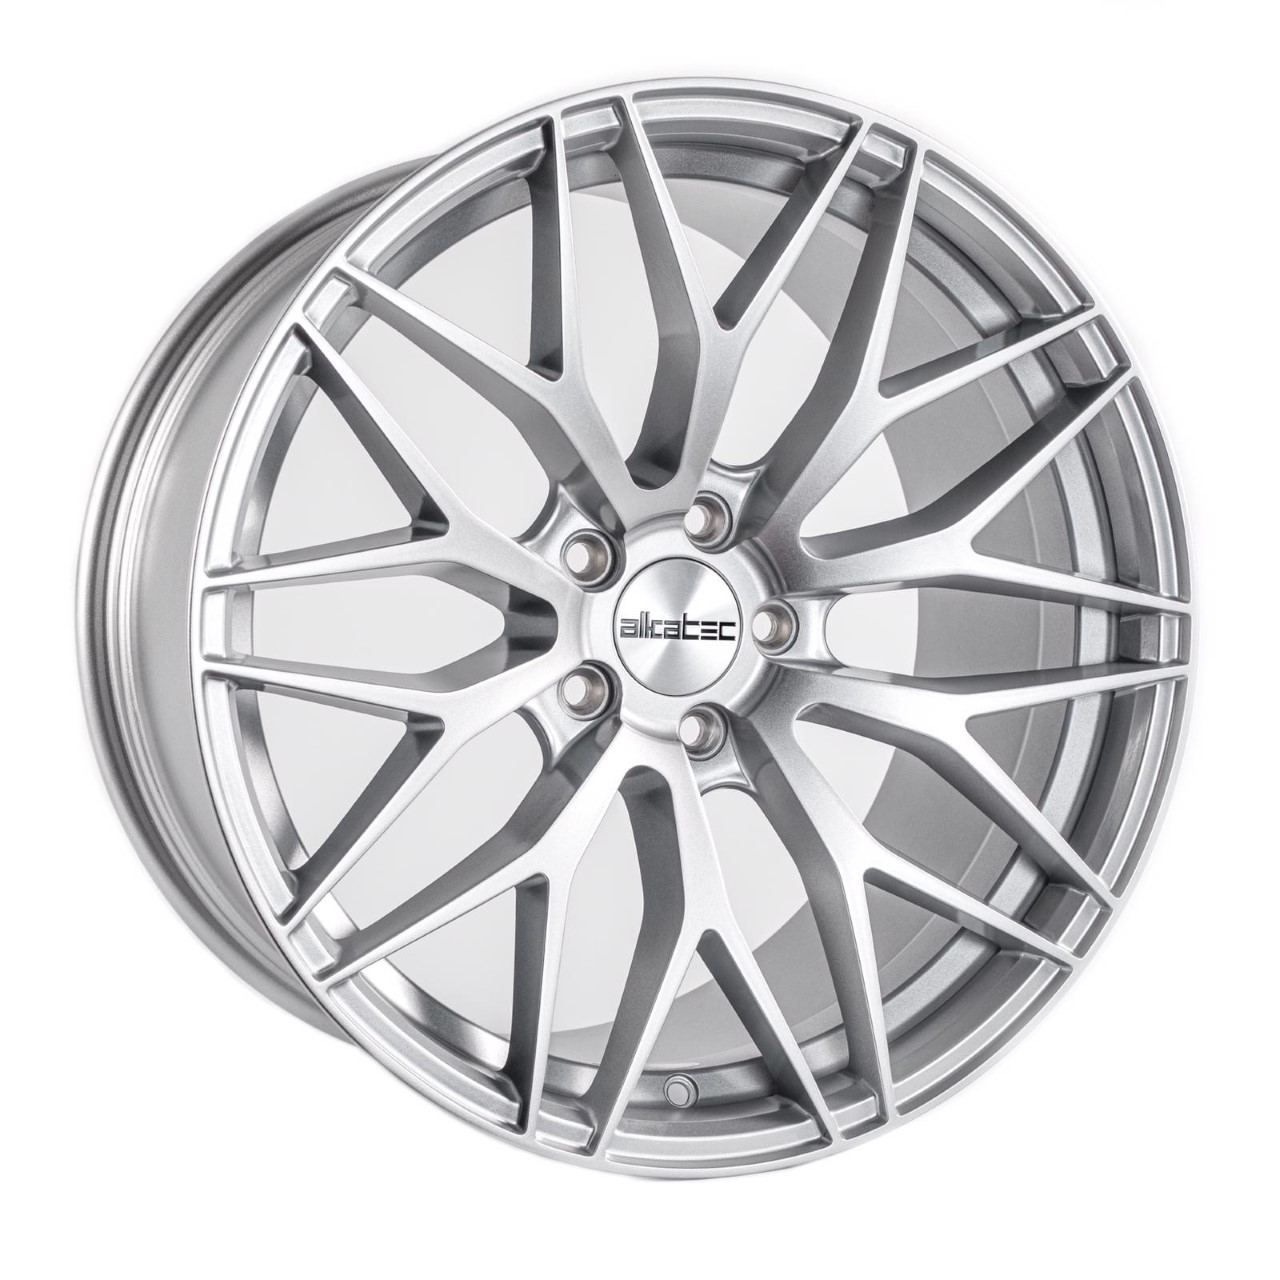 "NEW 18"" ALKATEC EVO-1 ALLOY WHEELS IN SILVER, WIDER 9.5"" REARS ET35/40"